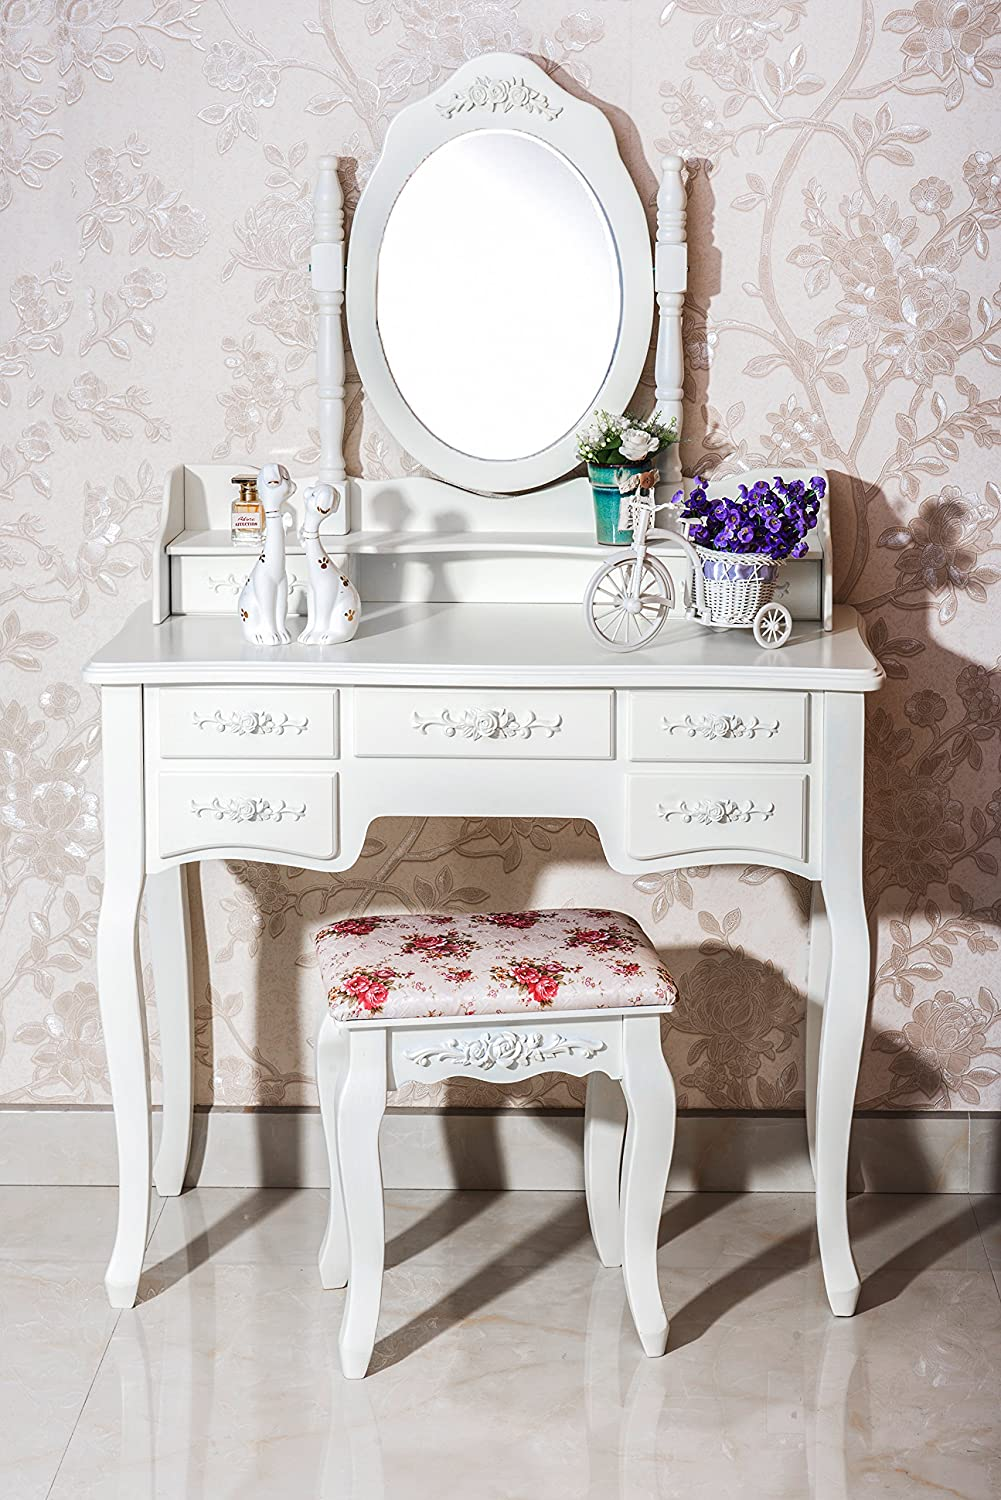 Modern dresser with mirror and chair - Amazon Com Beautiful White Label Cleopatra Vintage Vanity Table 7 Drawer Kitchen Dining